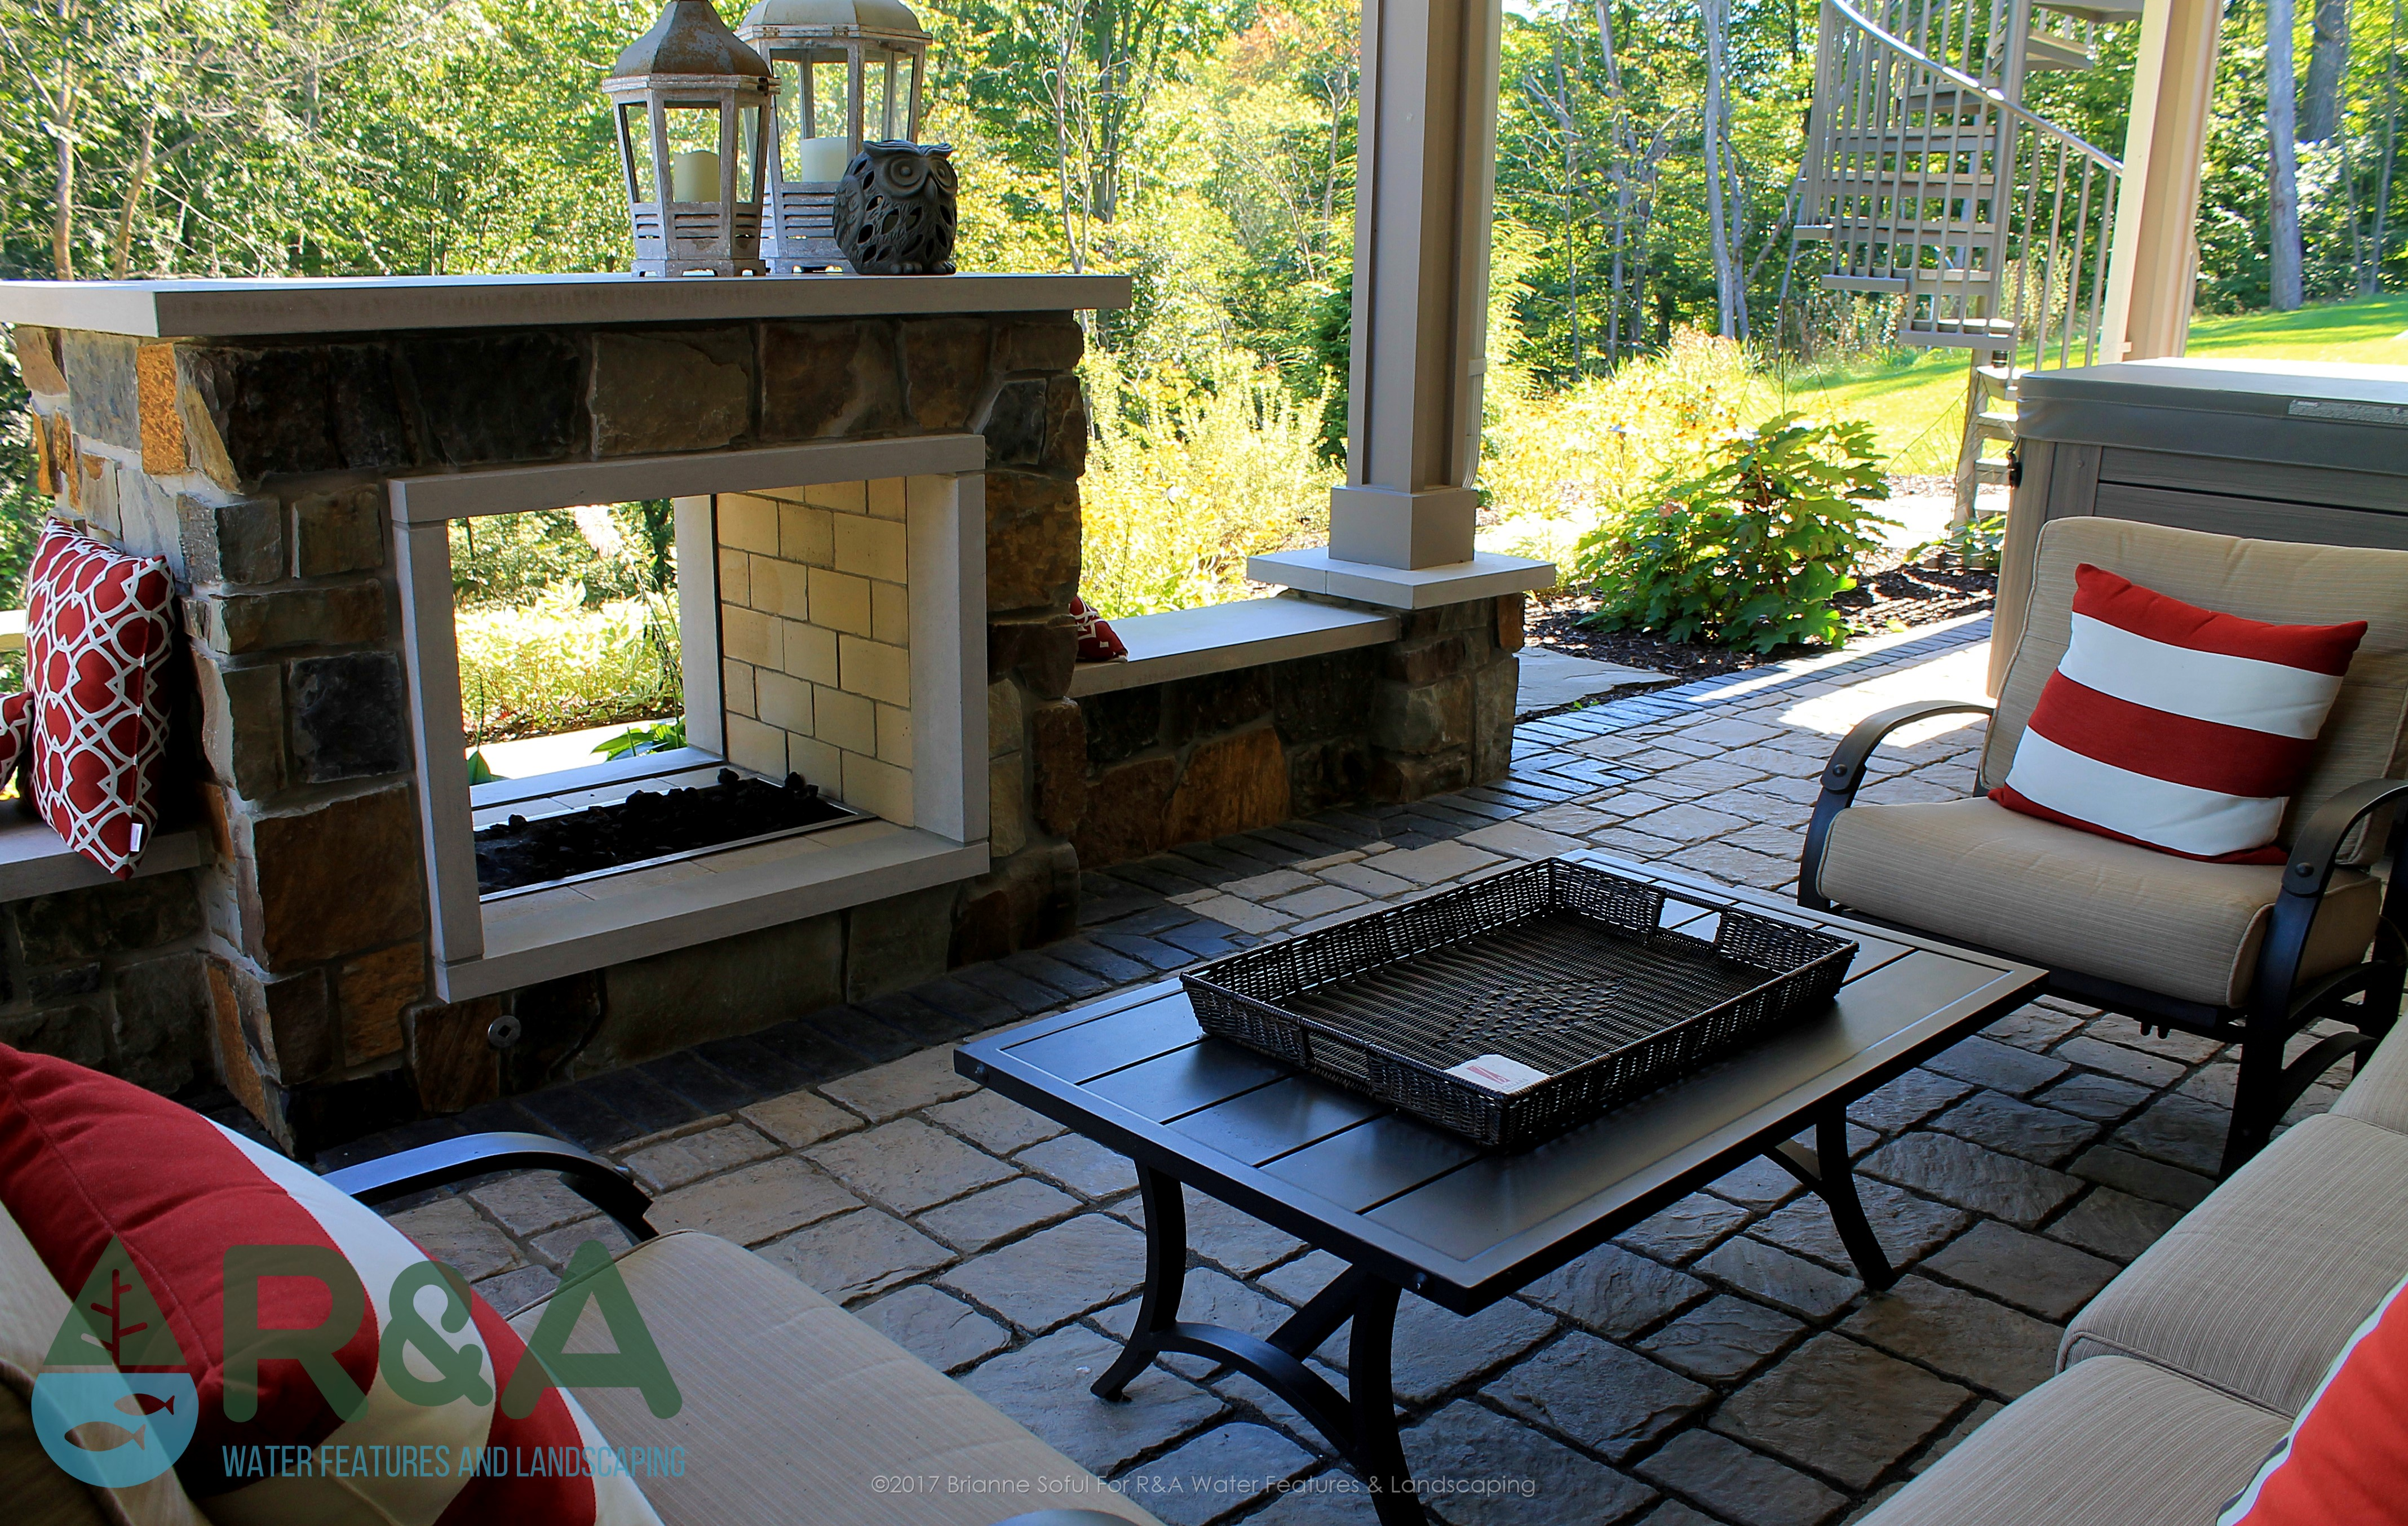 Grand Rapids Outdoor Living Area Landscaping Fireplace Deck 1